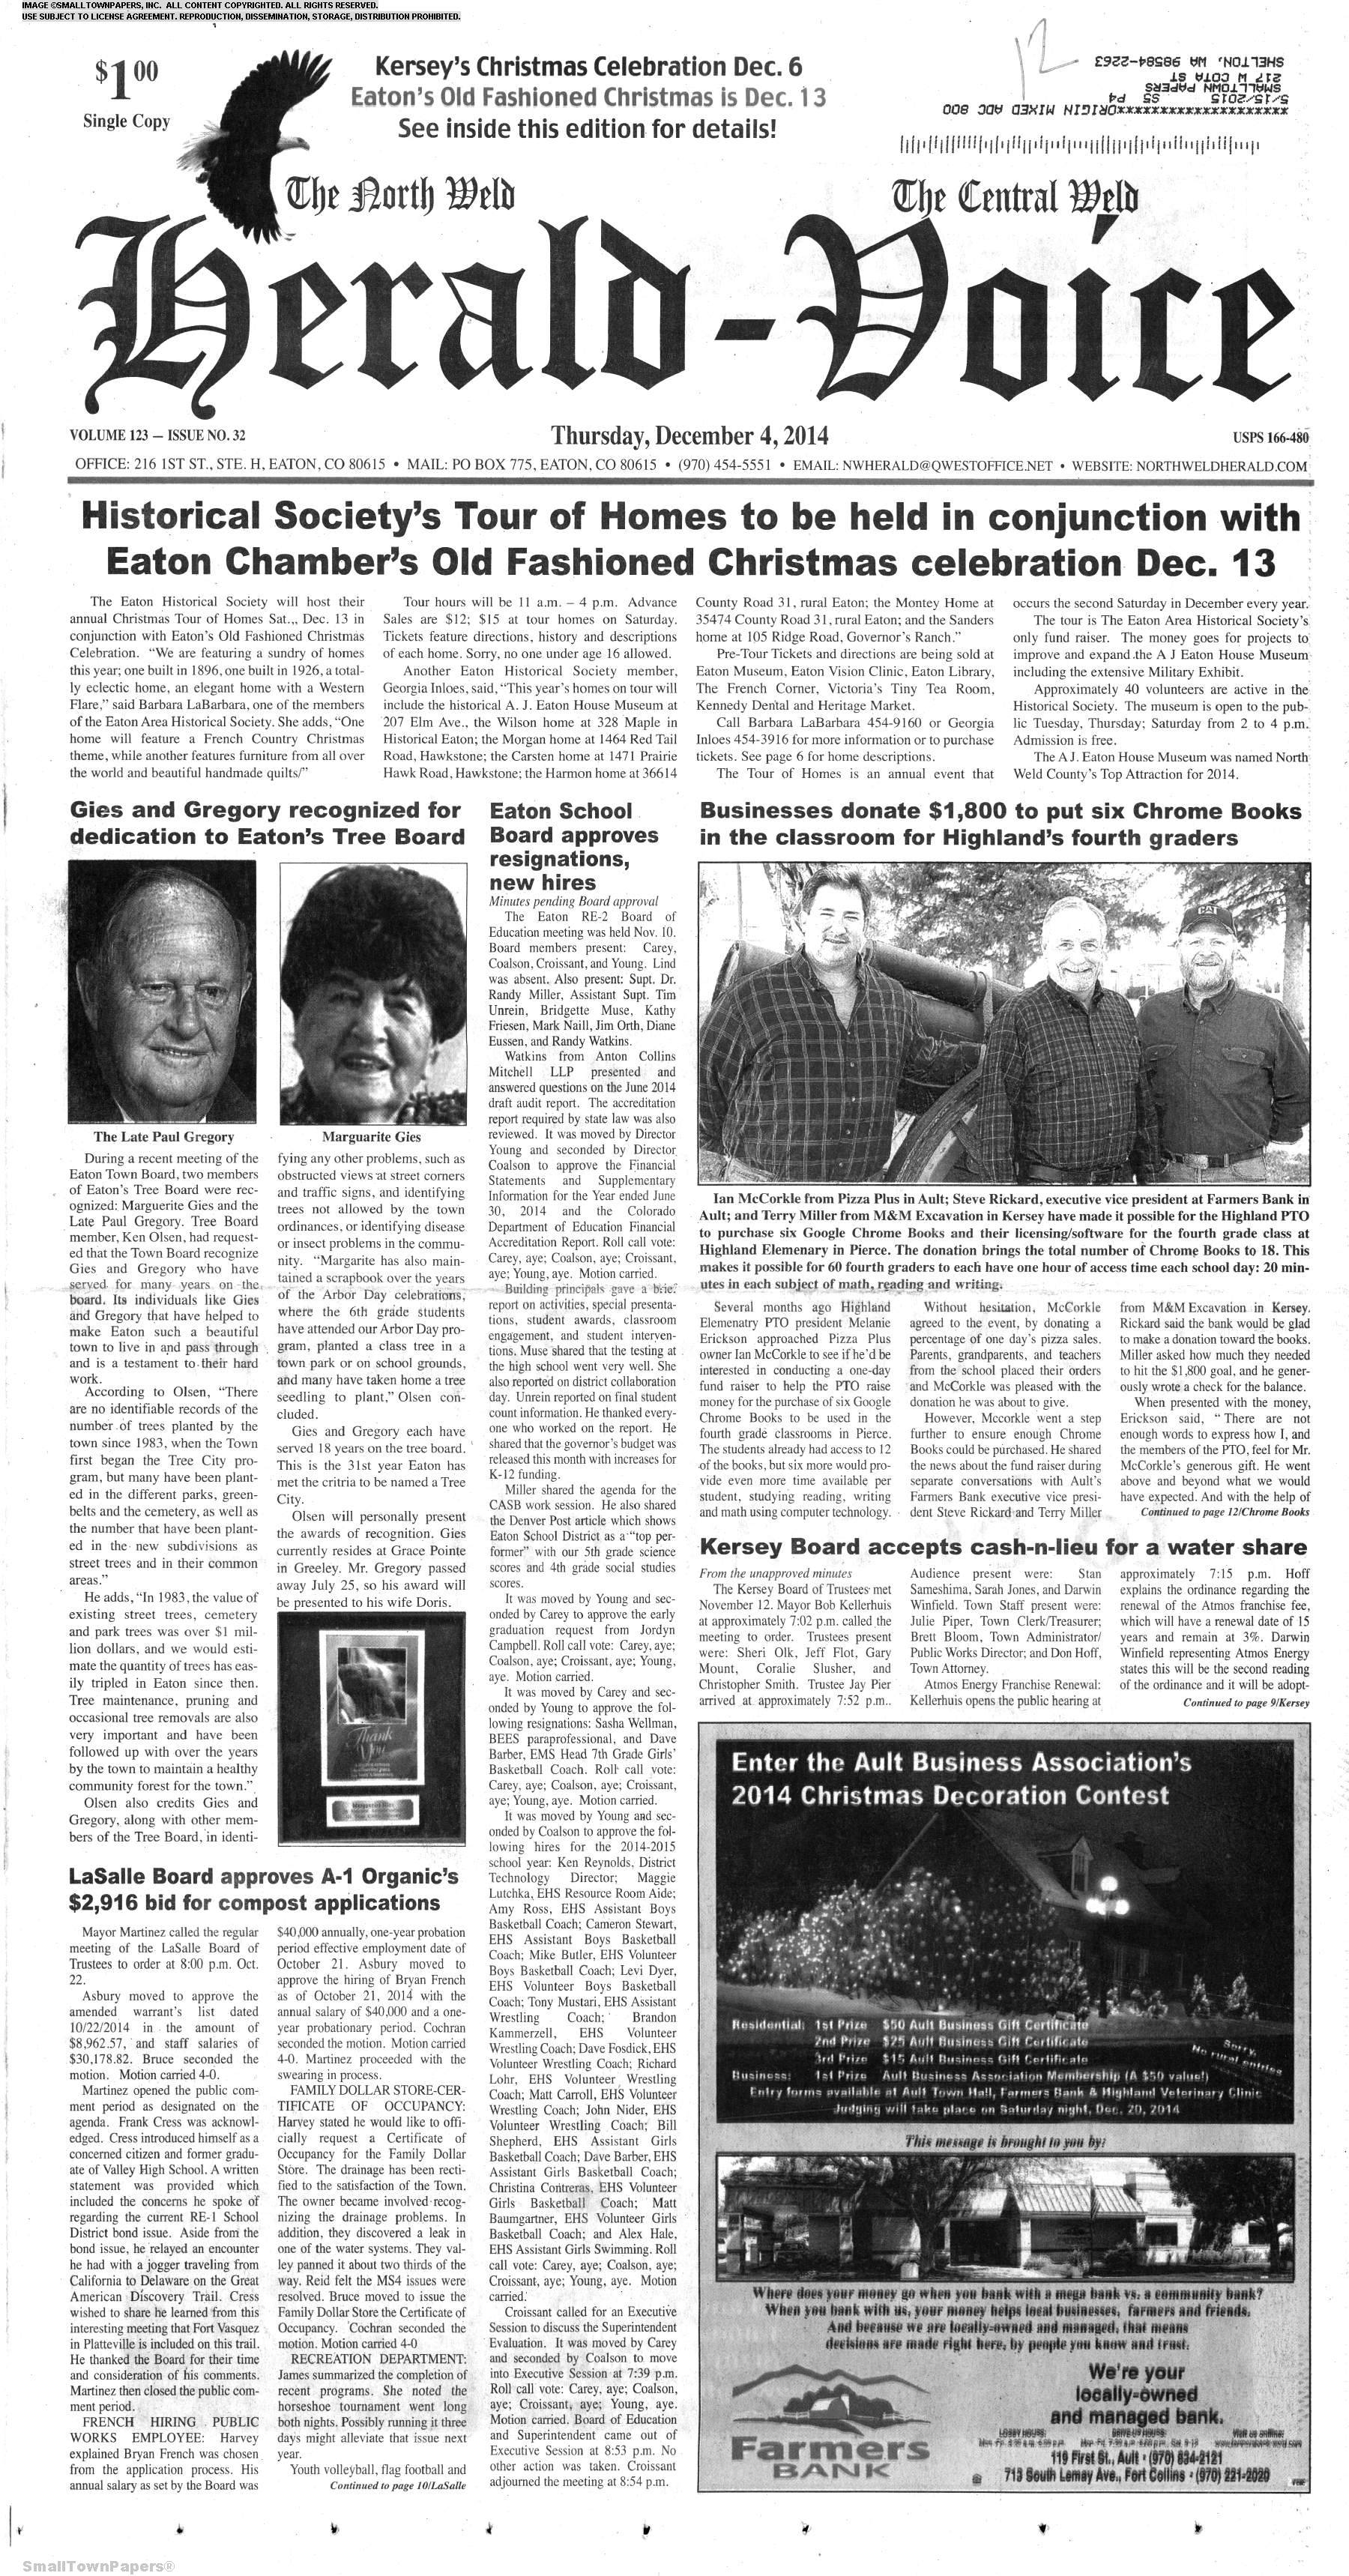 Eaton Co Old Fashioned Christmas 2020 The North Weld Herald Voice December 4, 2014: Page 1